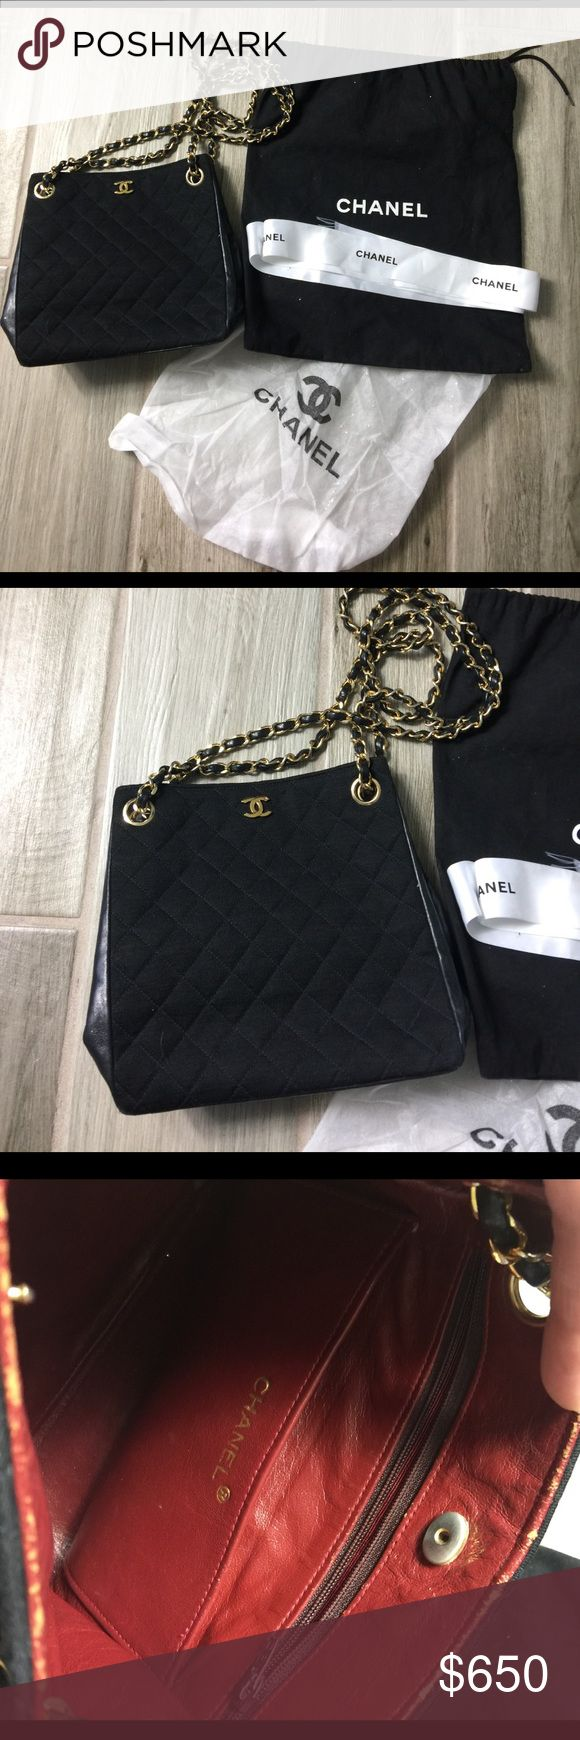 Vintage Authentic Chanel Shoulder Bag Vintage Authentic Chanel Shoulder Bag with serial number located on the interior. A little , little tear on the inside pocket , barely noticeable. Everything is in great used condition. Comes with dust bag. CHANEL Bags Shoulder Bags